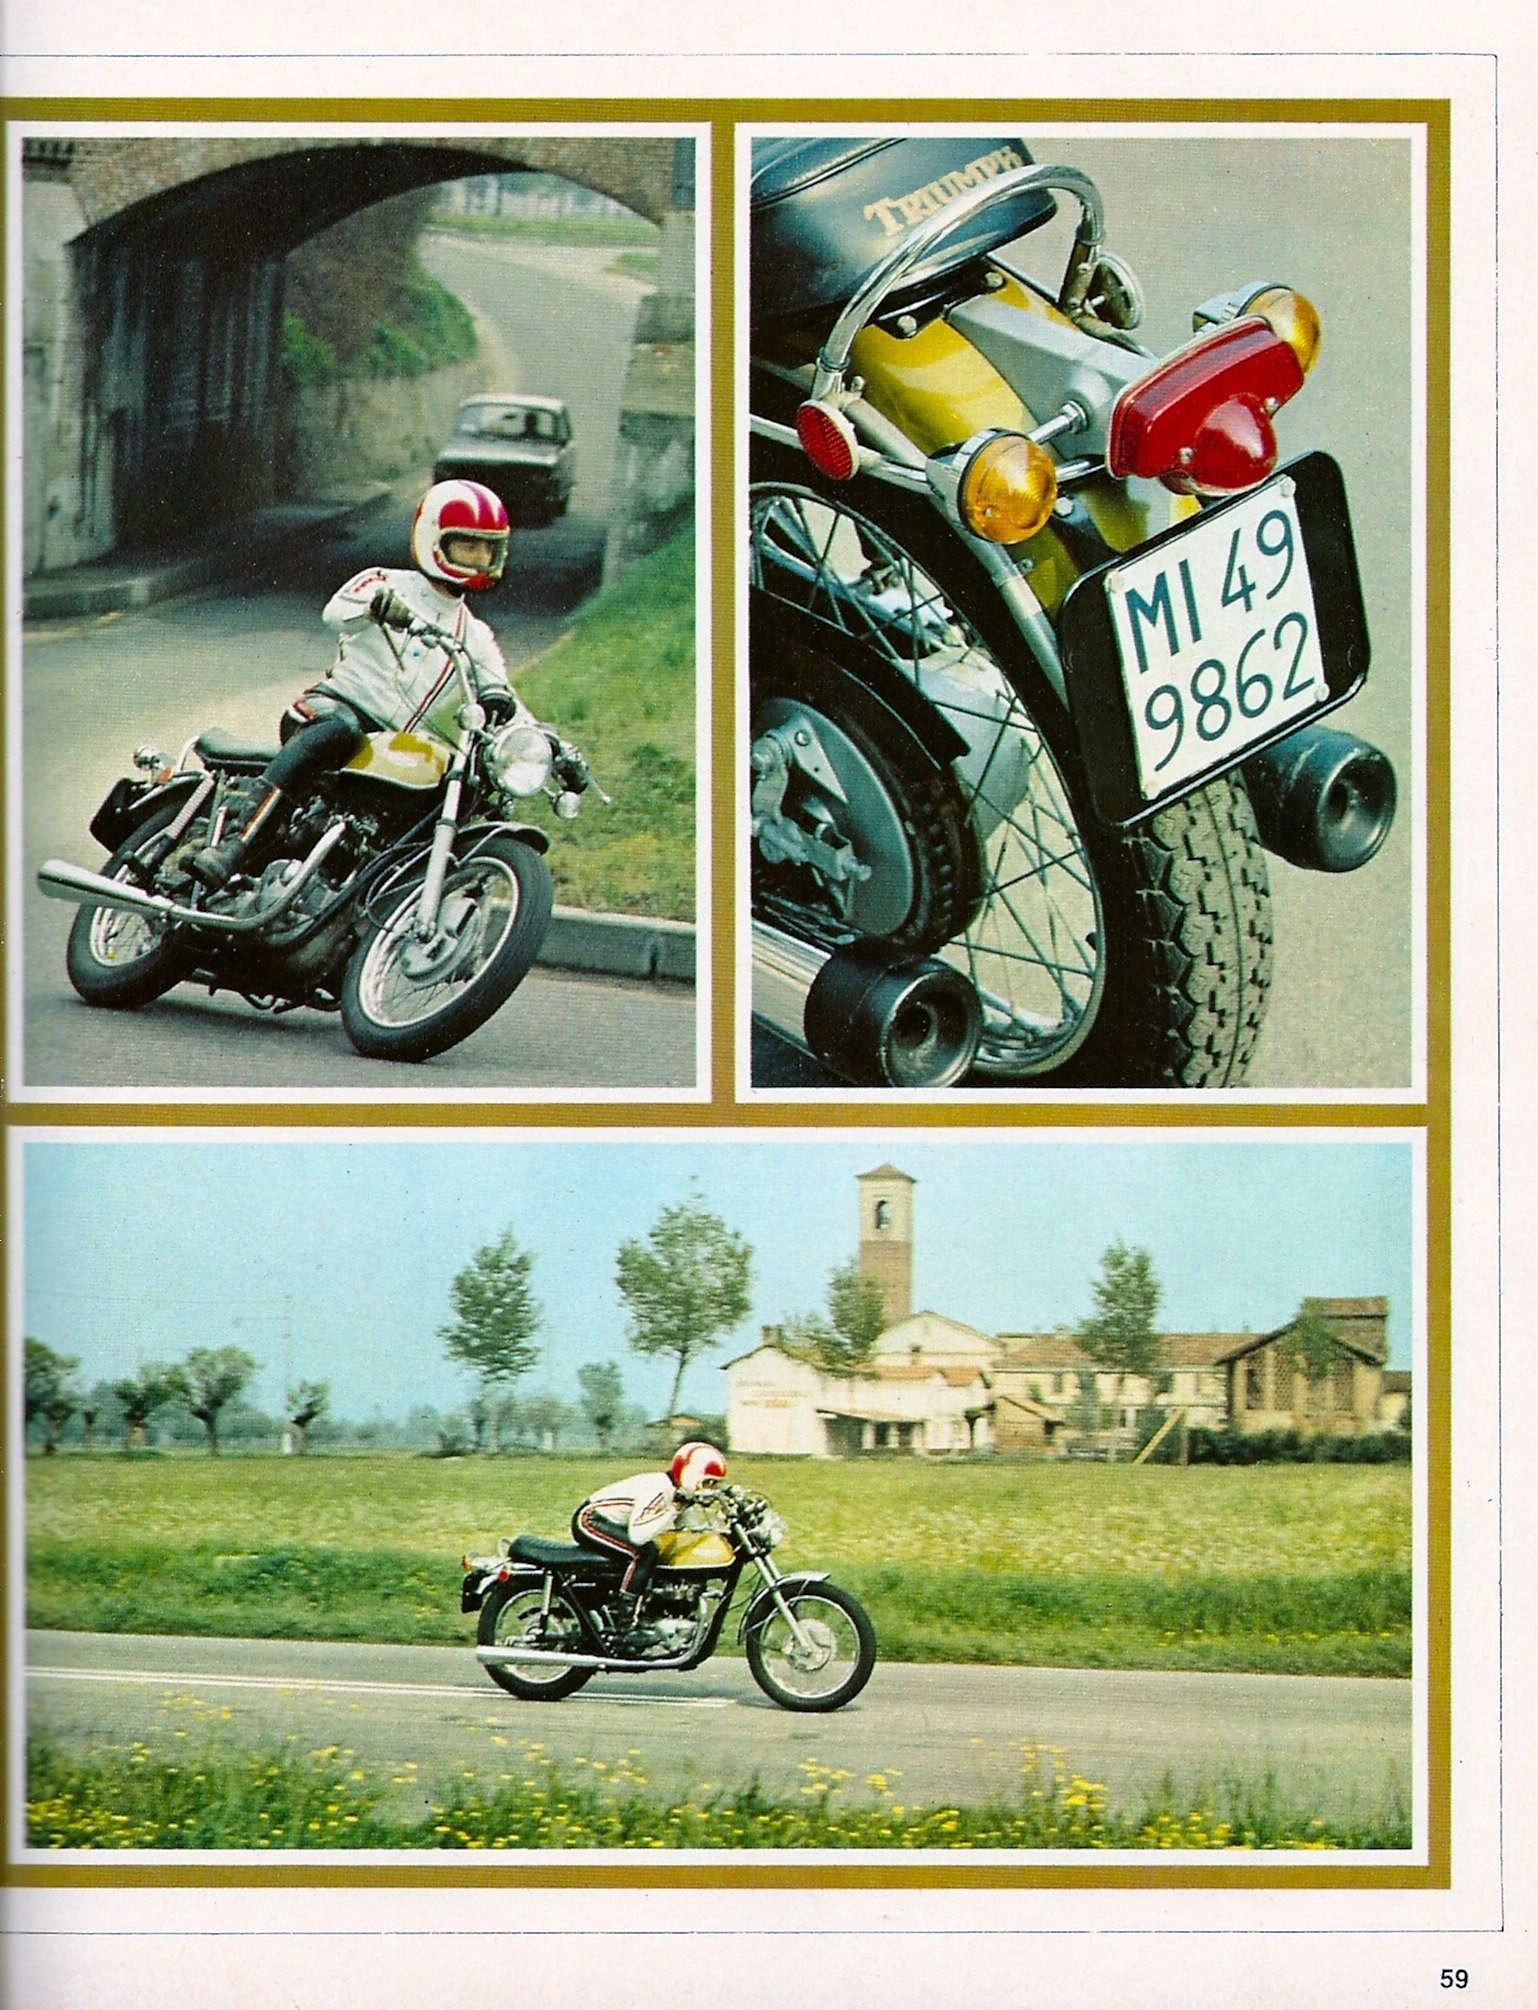 1972 Triumph Bonneville road test.2.jpg